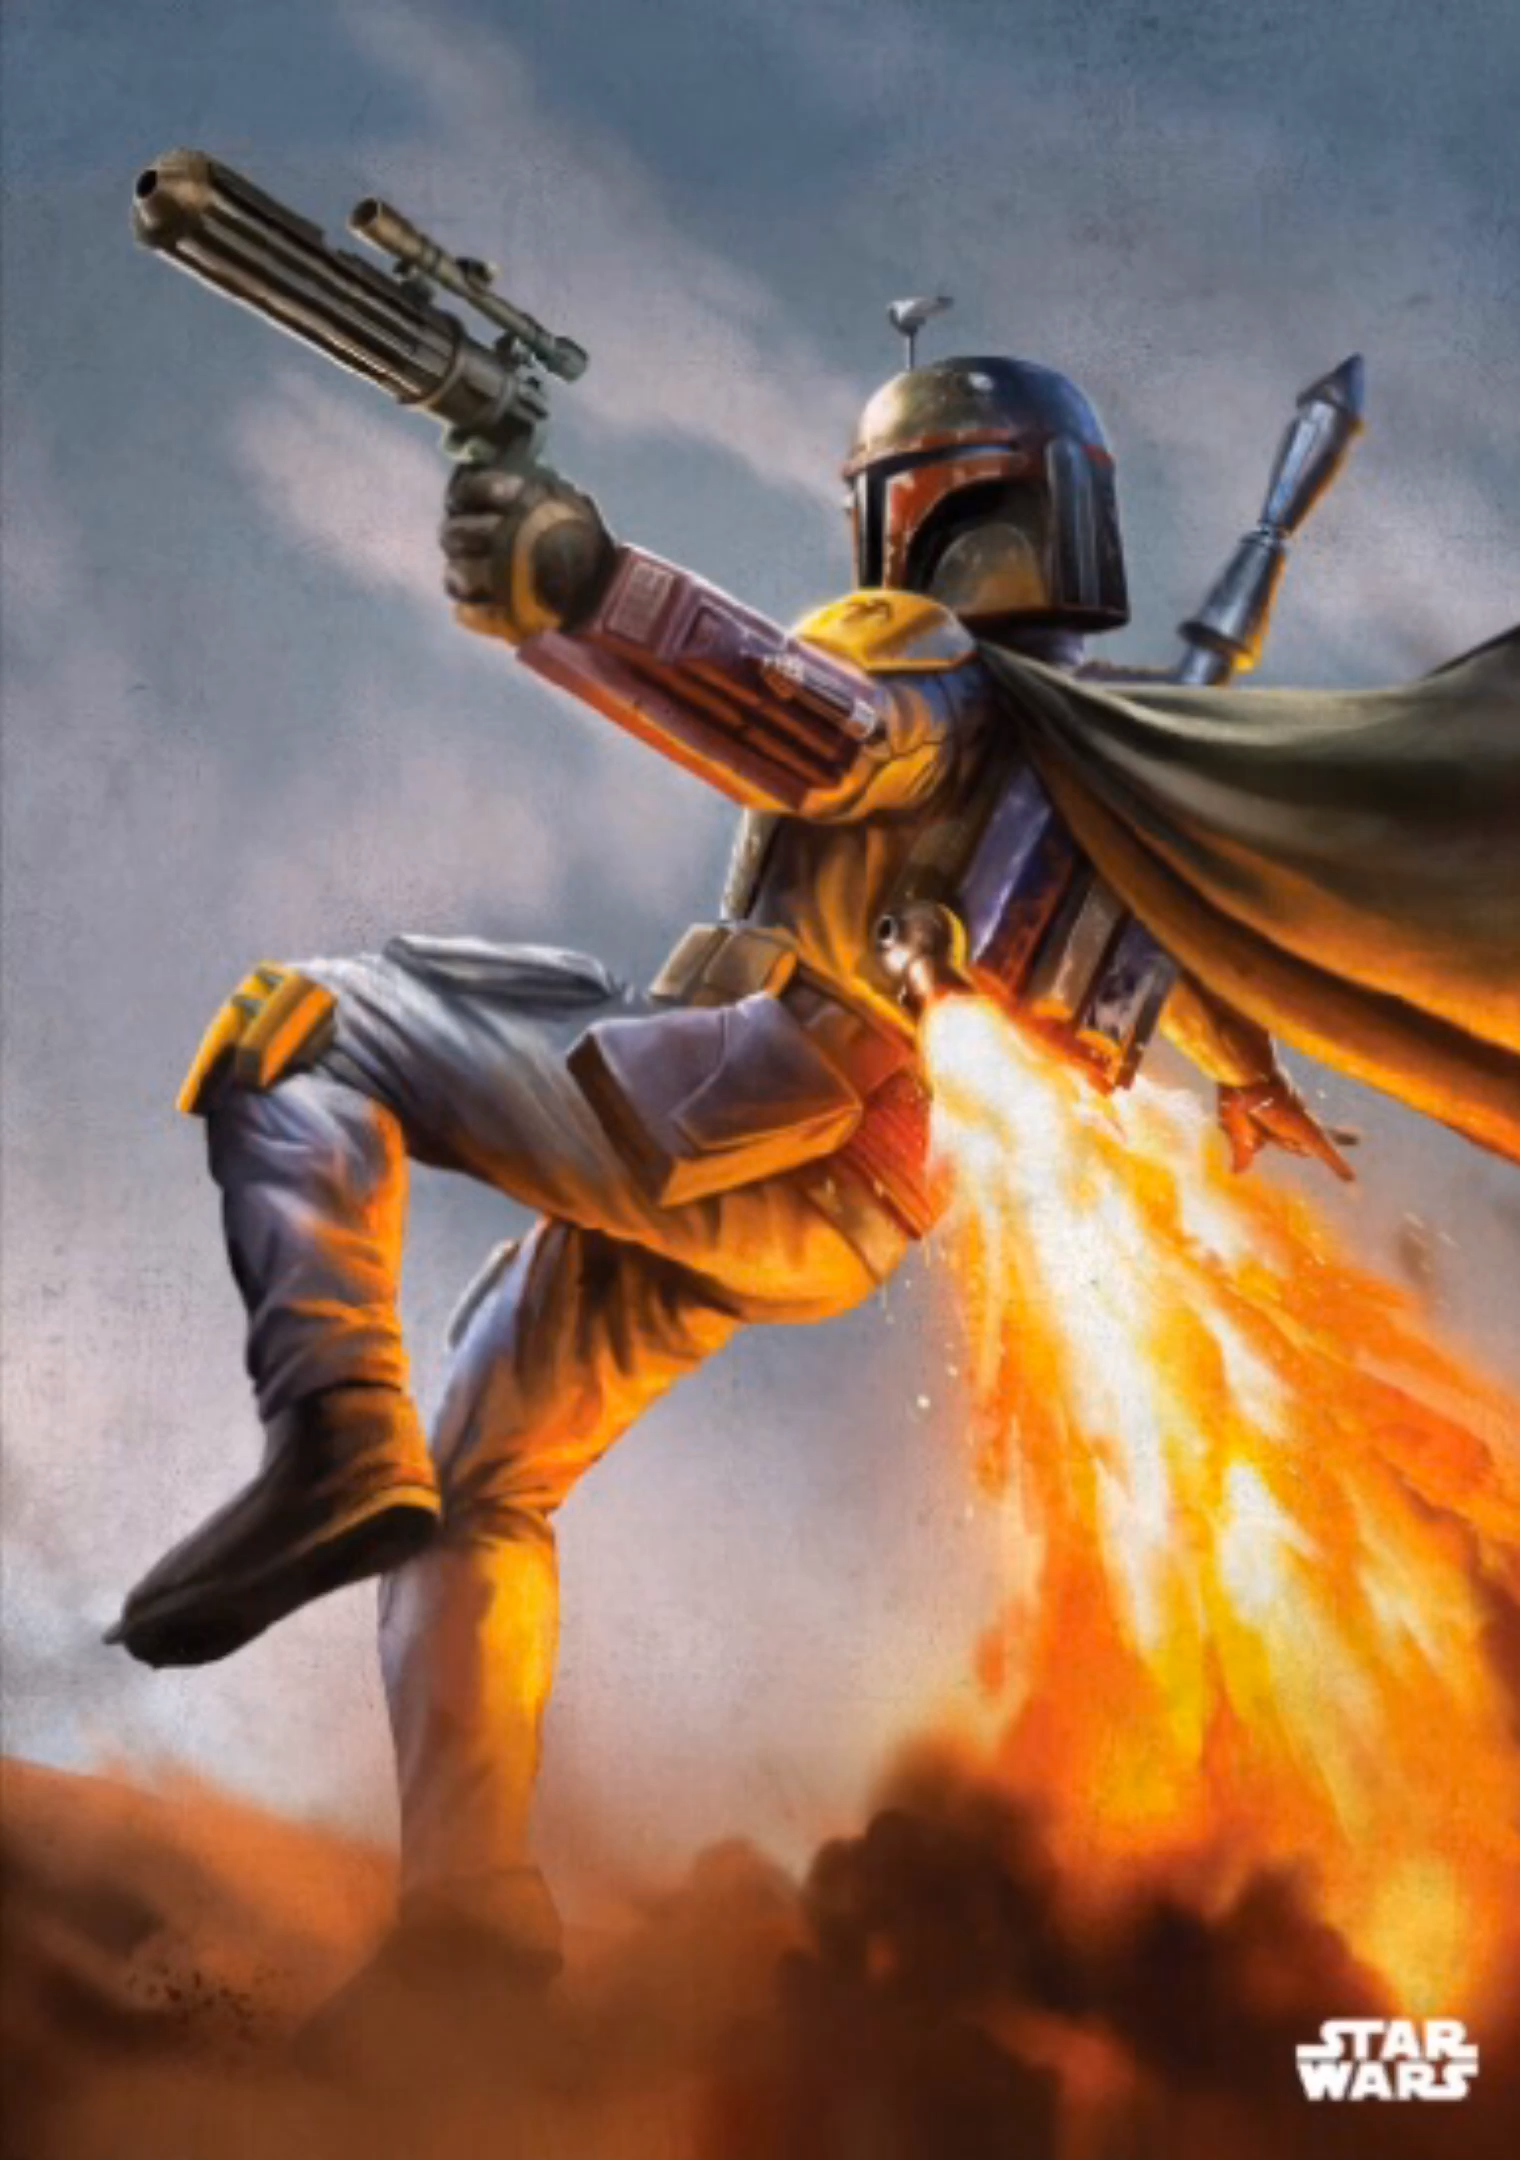 Photo of Boba Fett Poster made out of metal by Displate